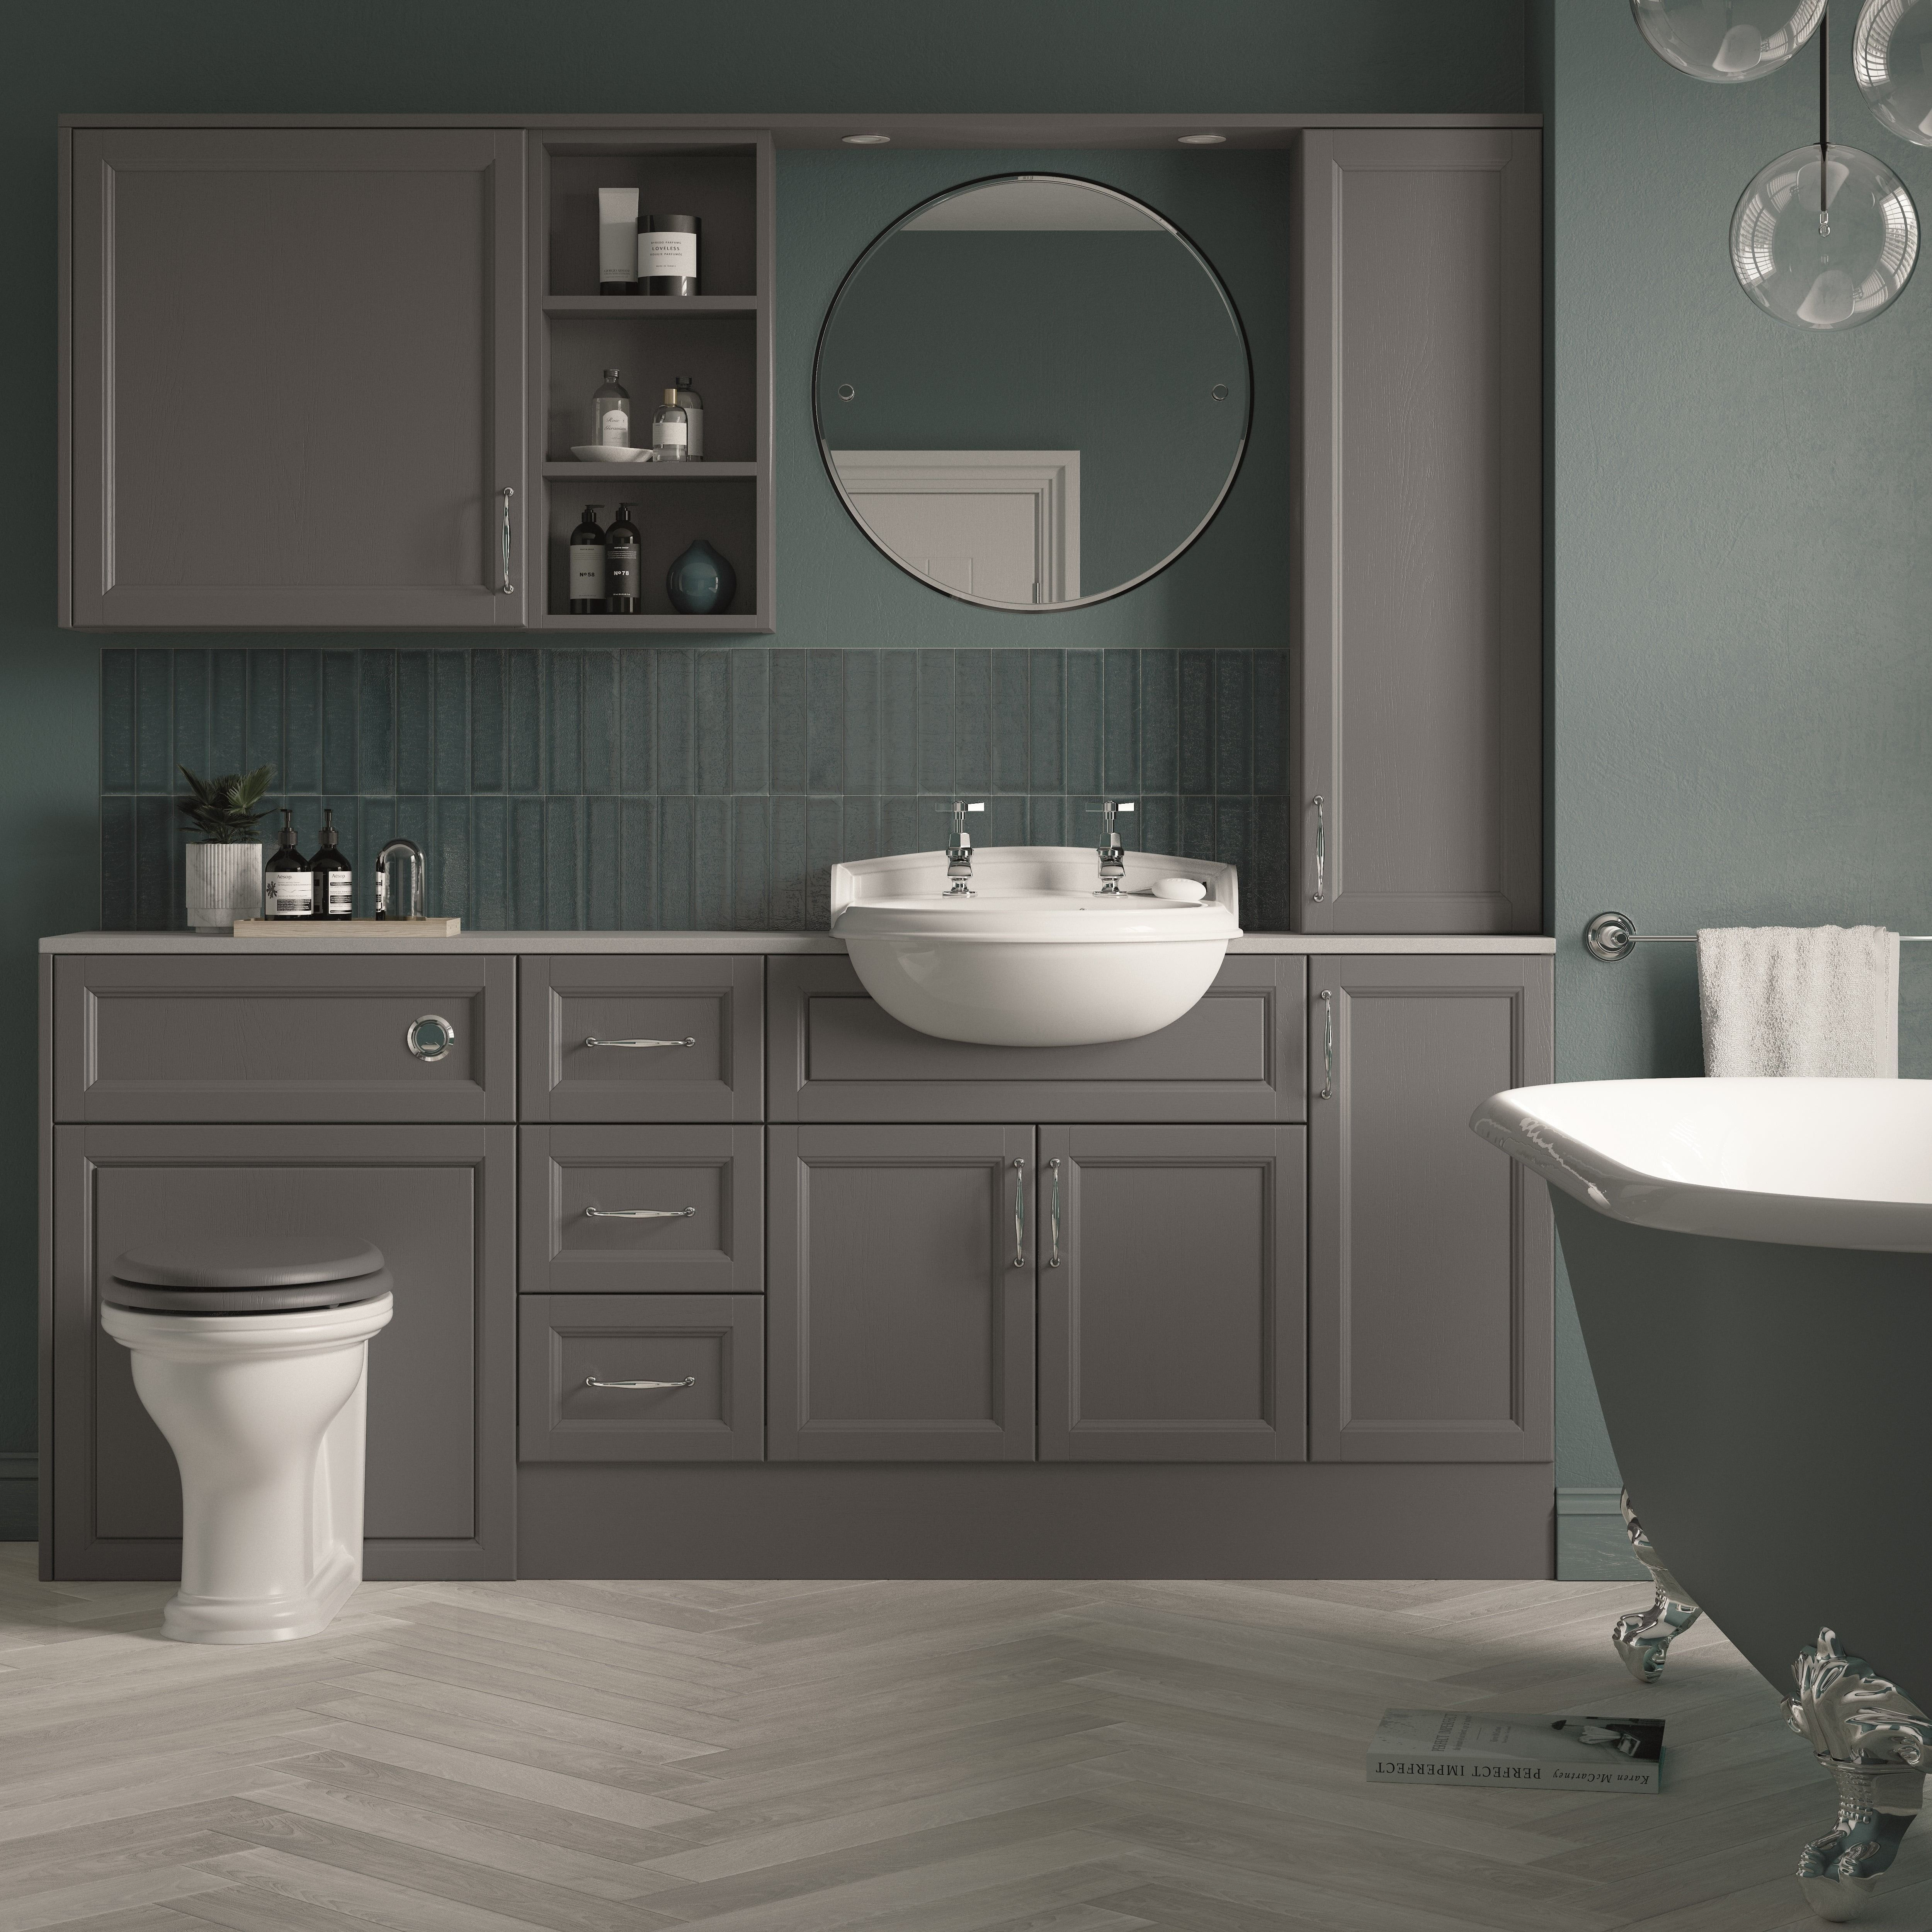 The New Fitted Furniture Range From Heritage Bathrooms Has Been Designed To Both Flaunt And Conceal Fitted Bathroom Fitted Bathroom Furniture Fitted Furniture